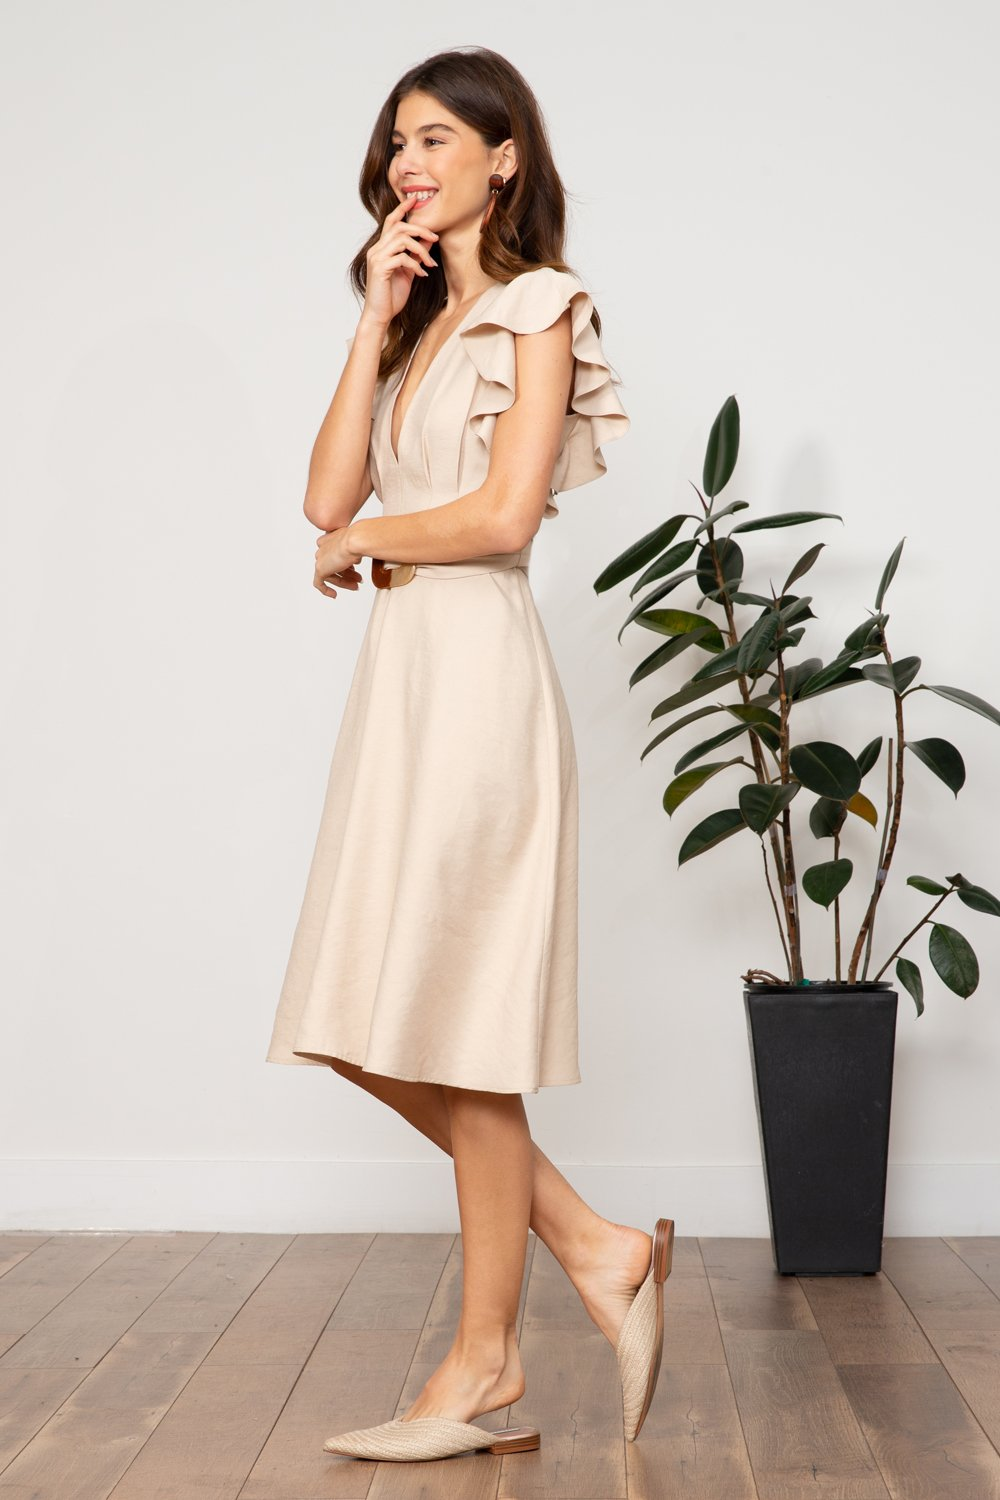 922cfa7f59 Load image into Gallery viewer, LUCY PARIS CELESTE BELTED DRESS ...